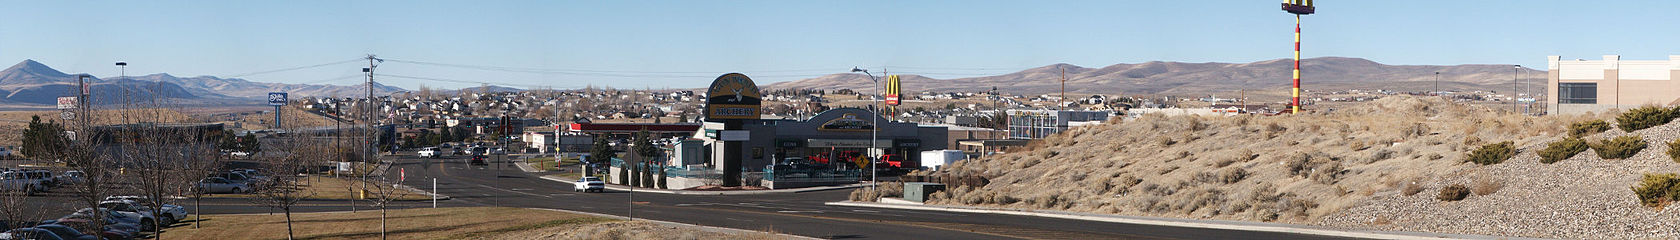 Jobs in Elko, NV - Search Elko Job Listings | Monster